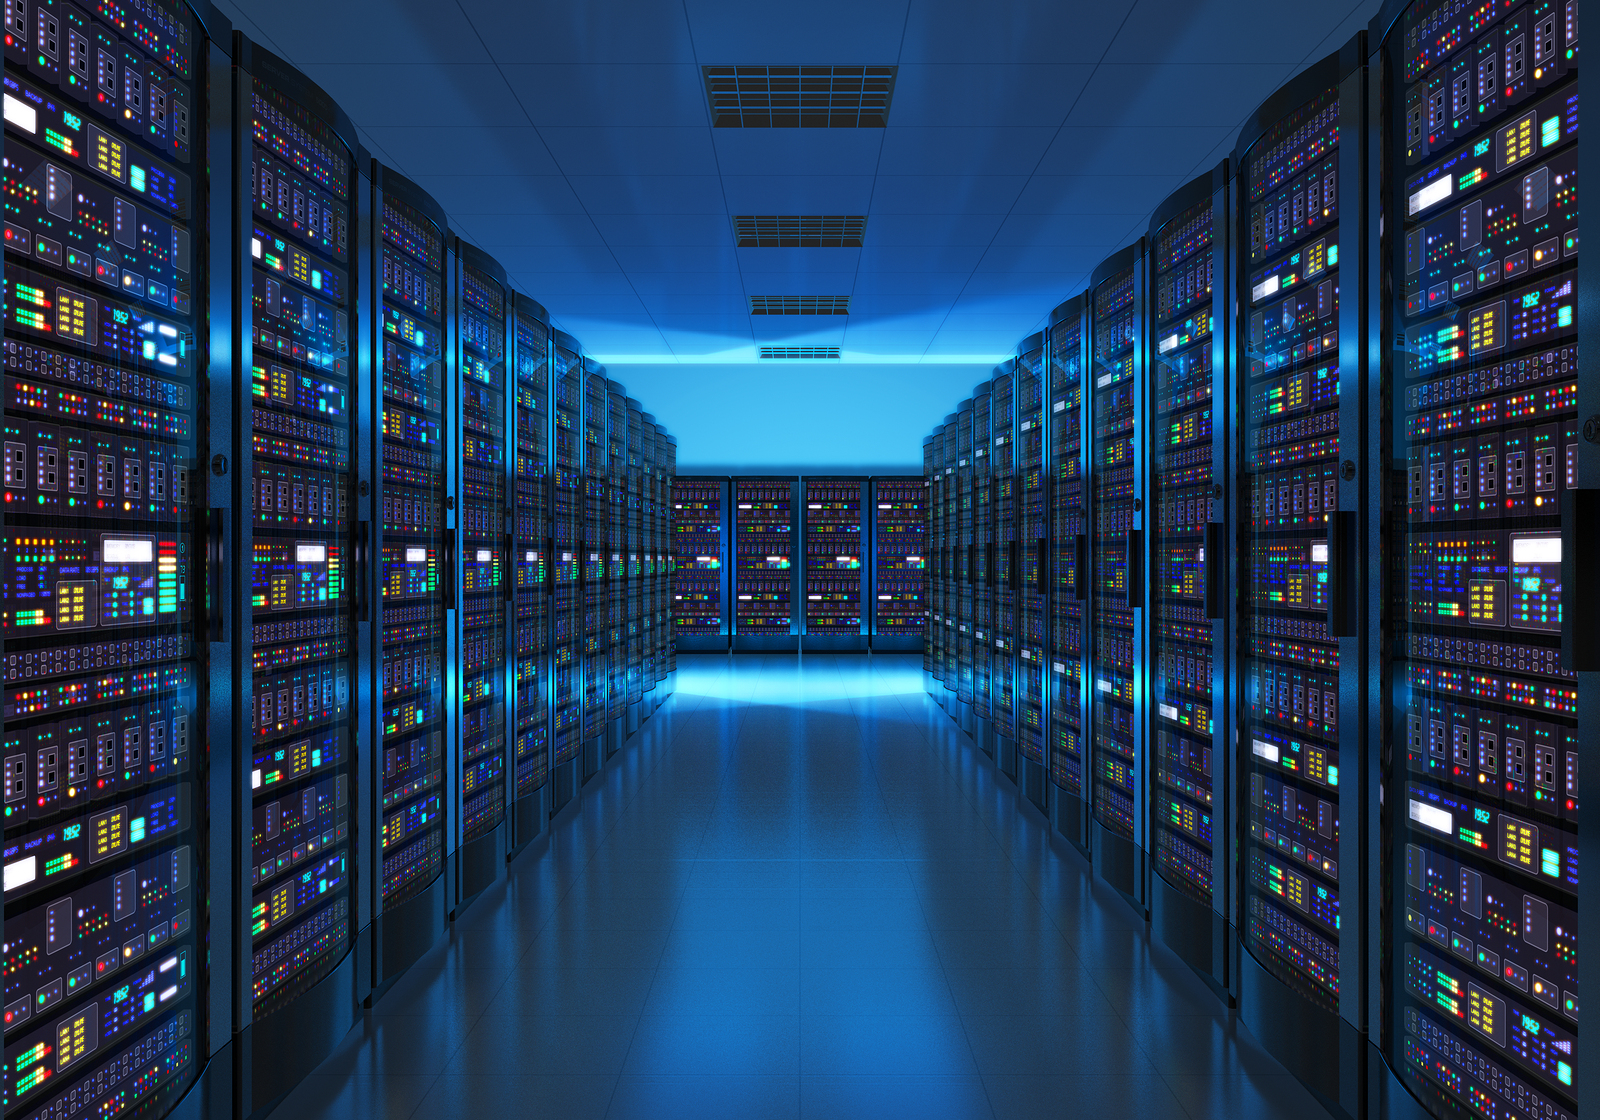 Server Design, Storage Solutions, Turnkey IT Solutions